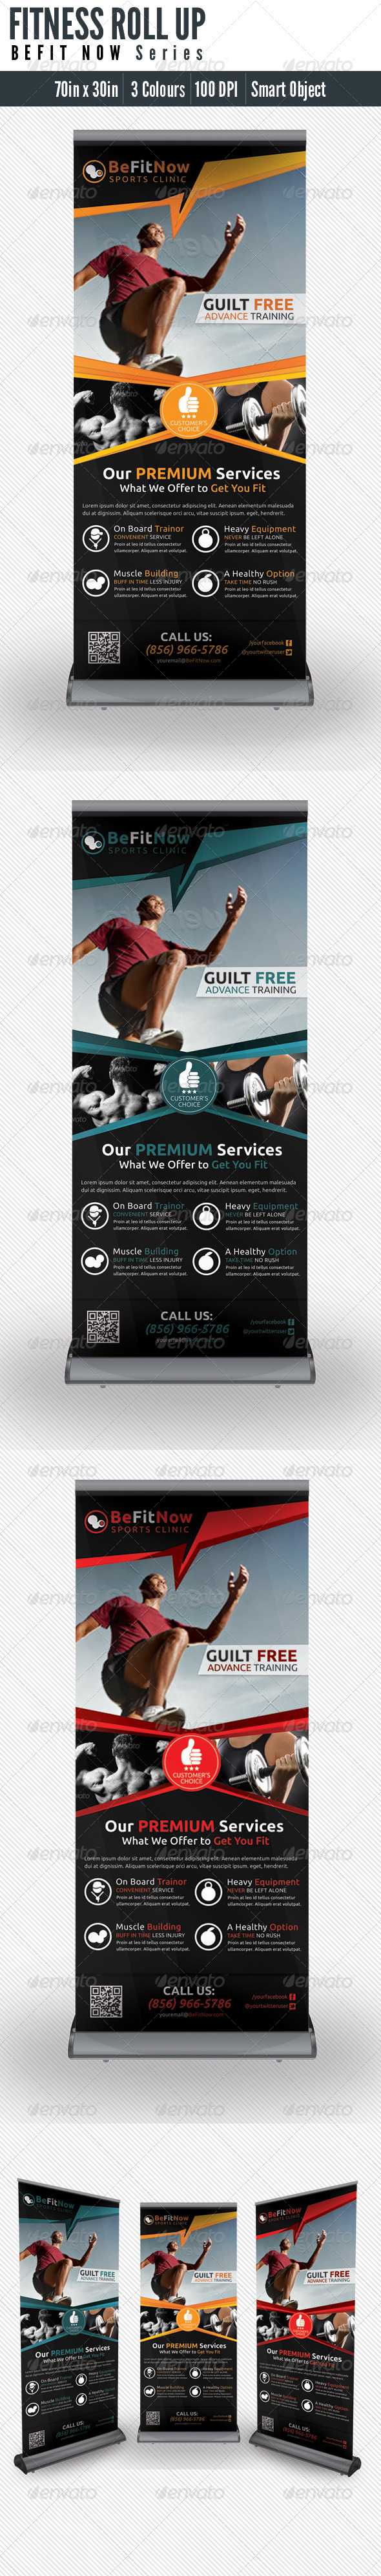 Fitness Roll UP Banner  - Signage Print Templates